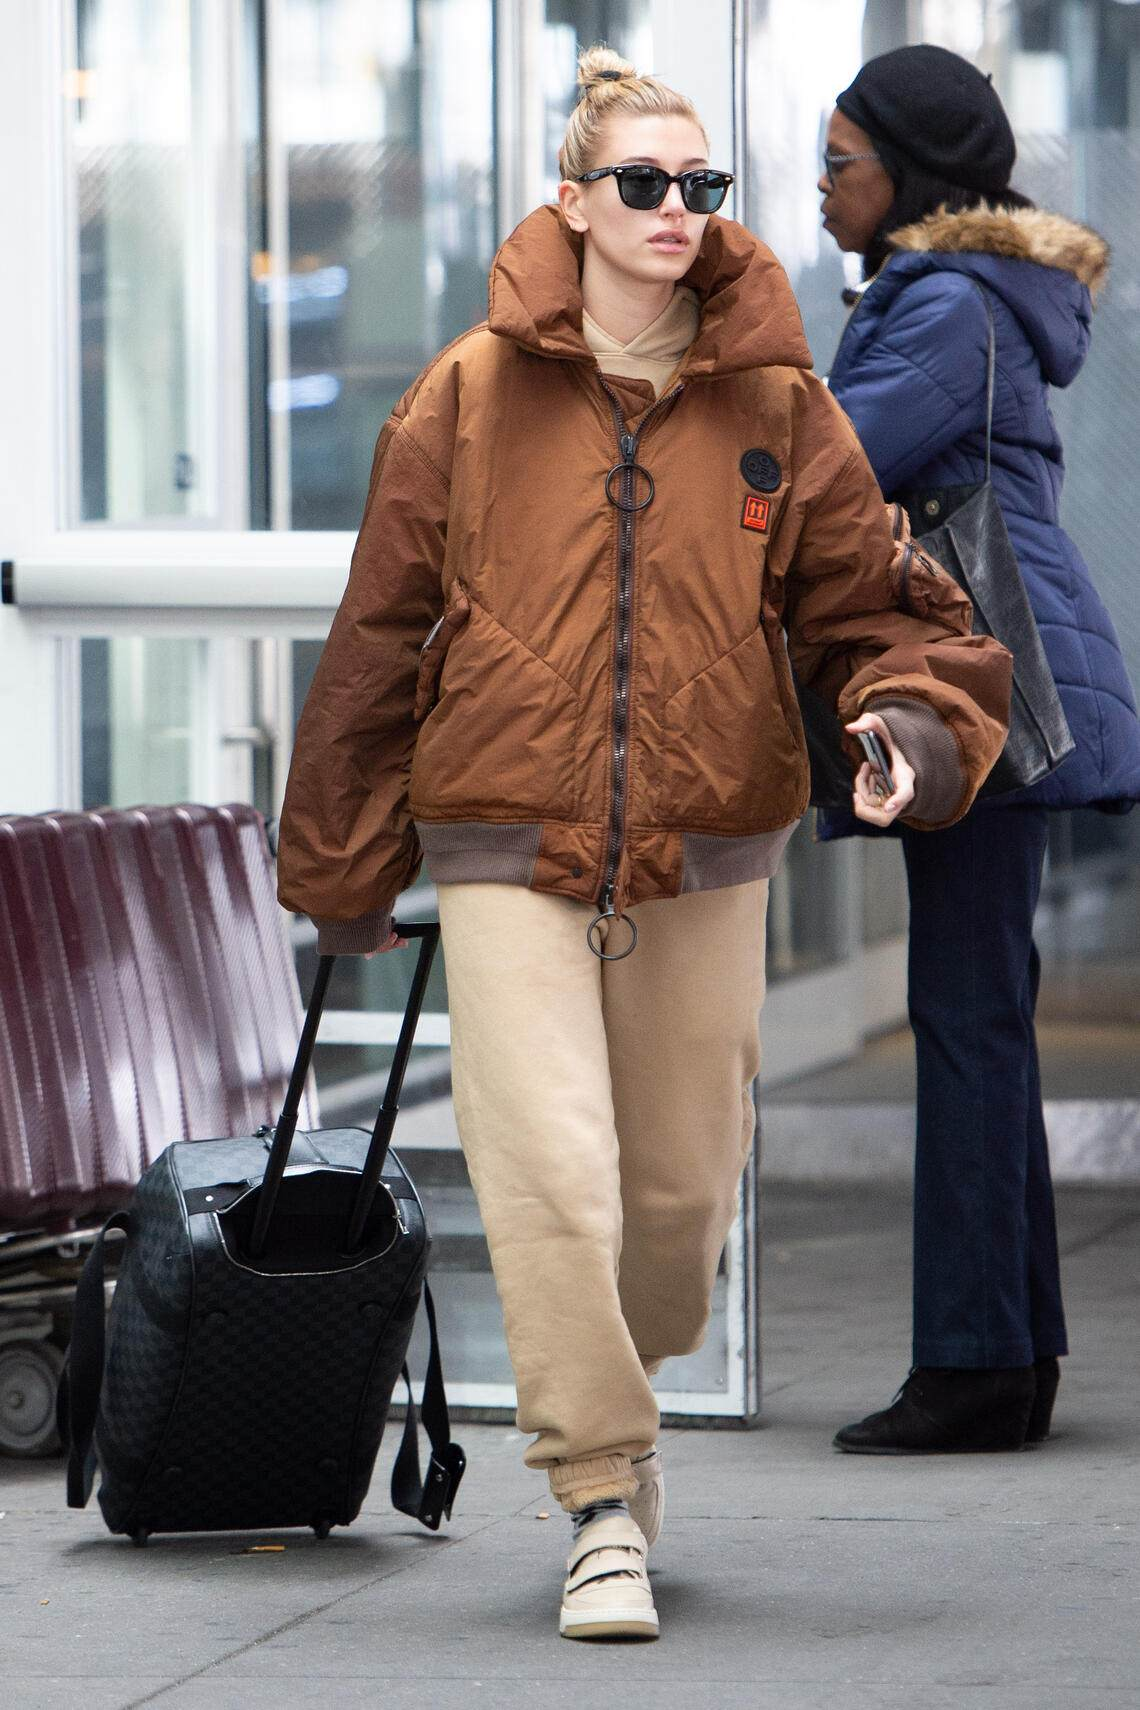 NEW YORK, NY - MARCH 04: Hailey Baldwin seen at JFK airport on March 4, 2019 in New York City. (Photo by Adrian Edwards/GC Images)